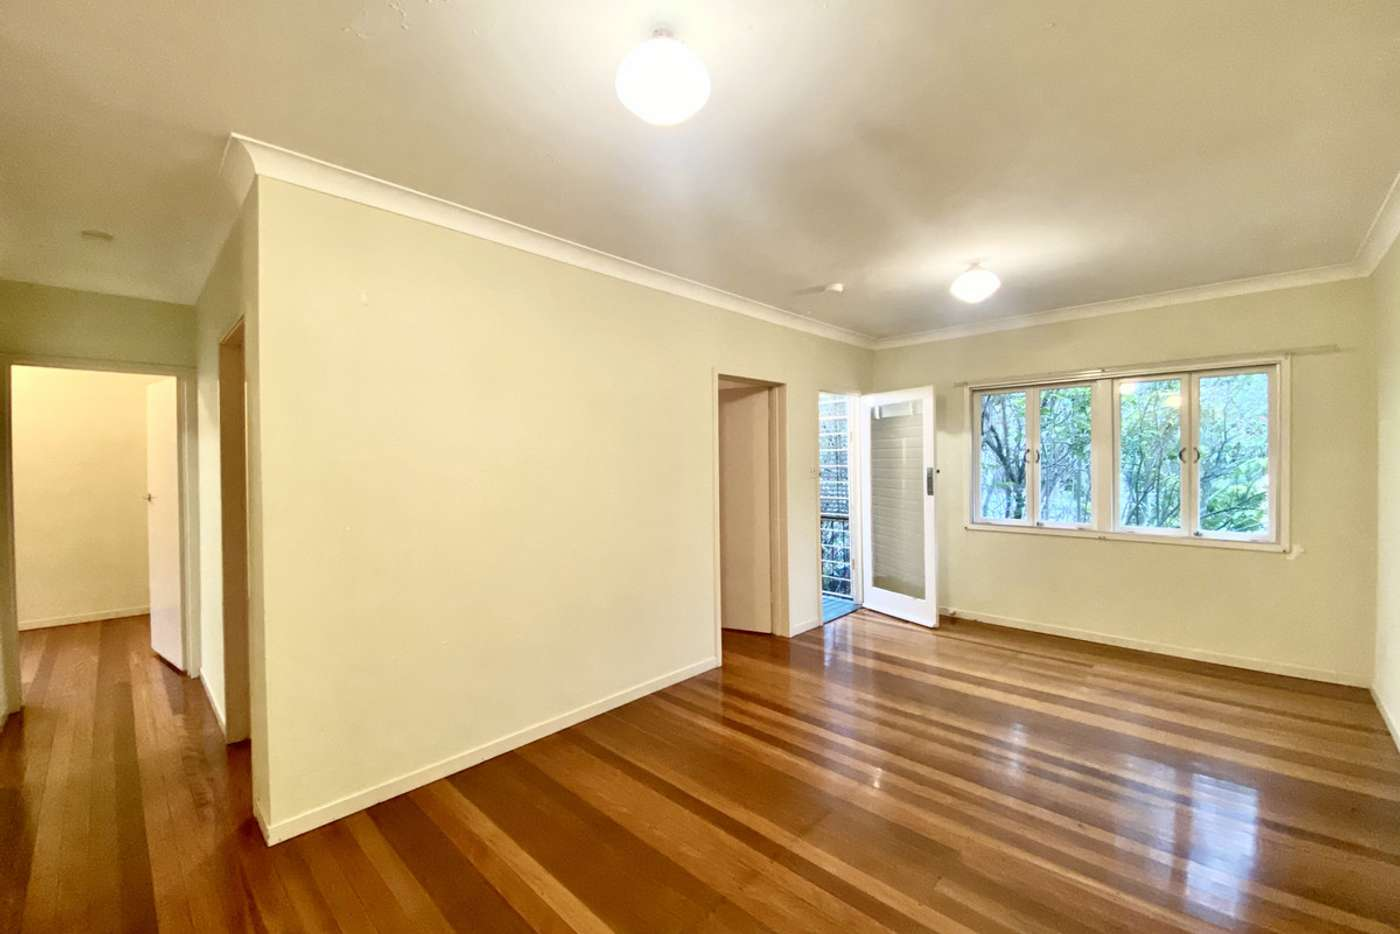 Main view of Homely house listing, 28 Exmouth Street, Toowong QLD 4066